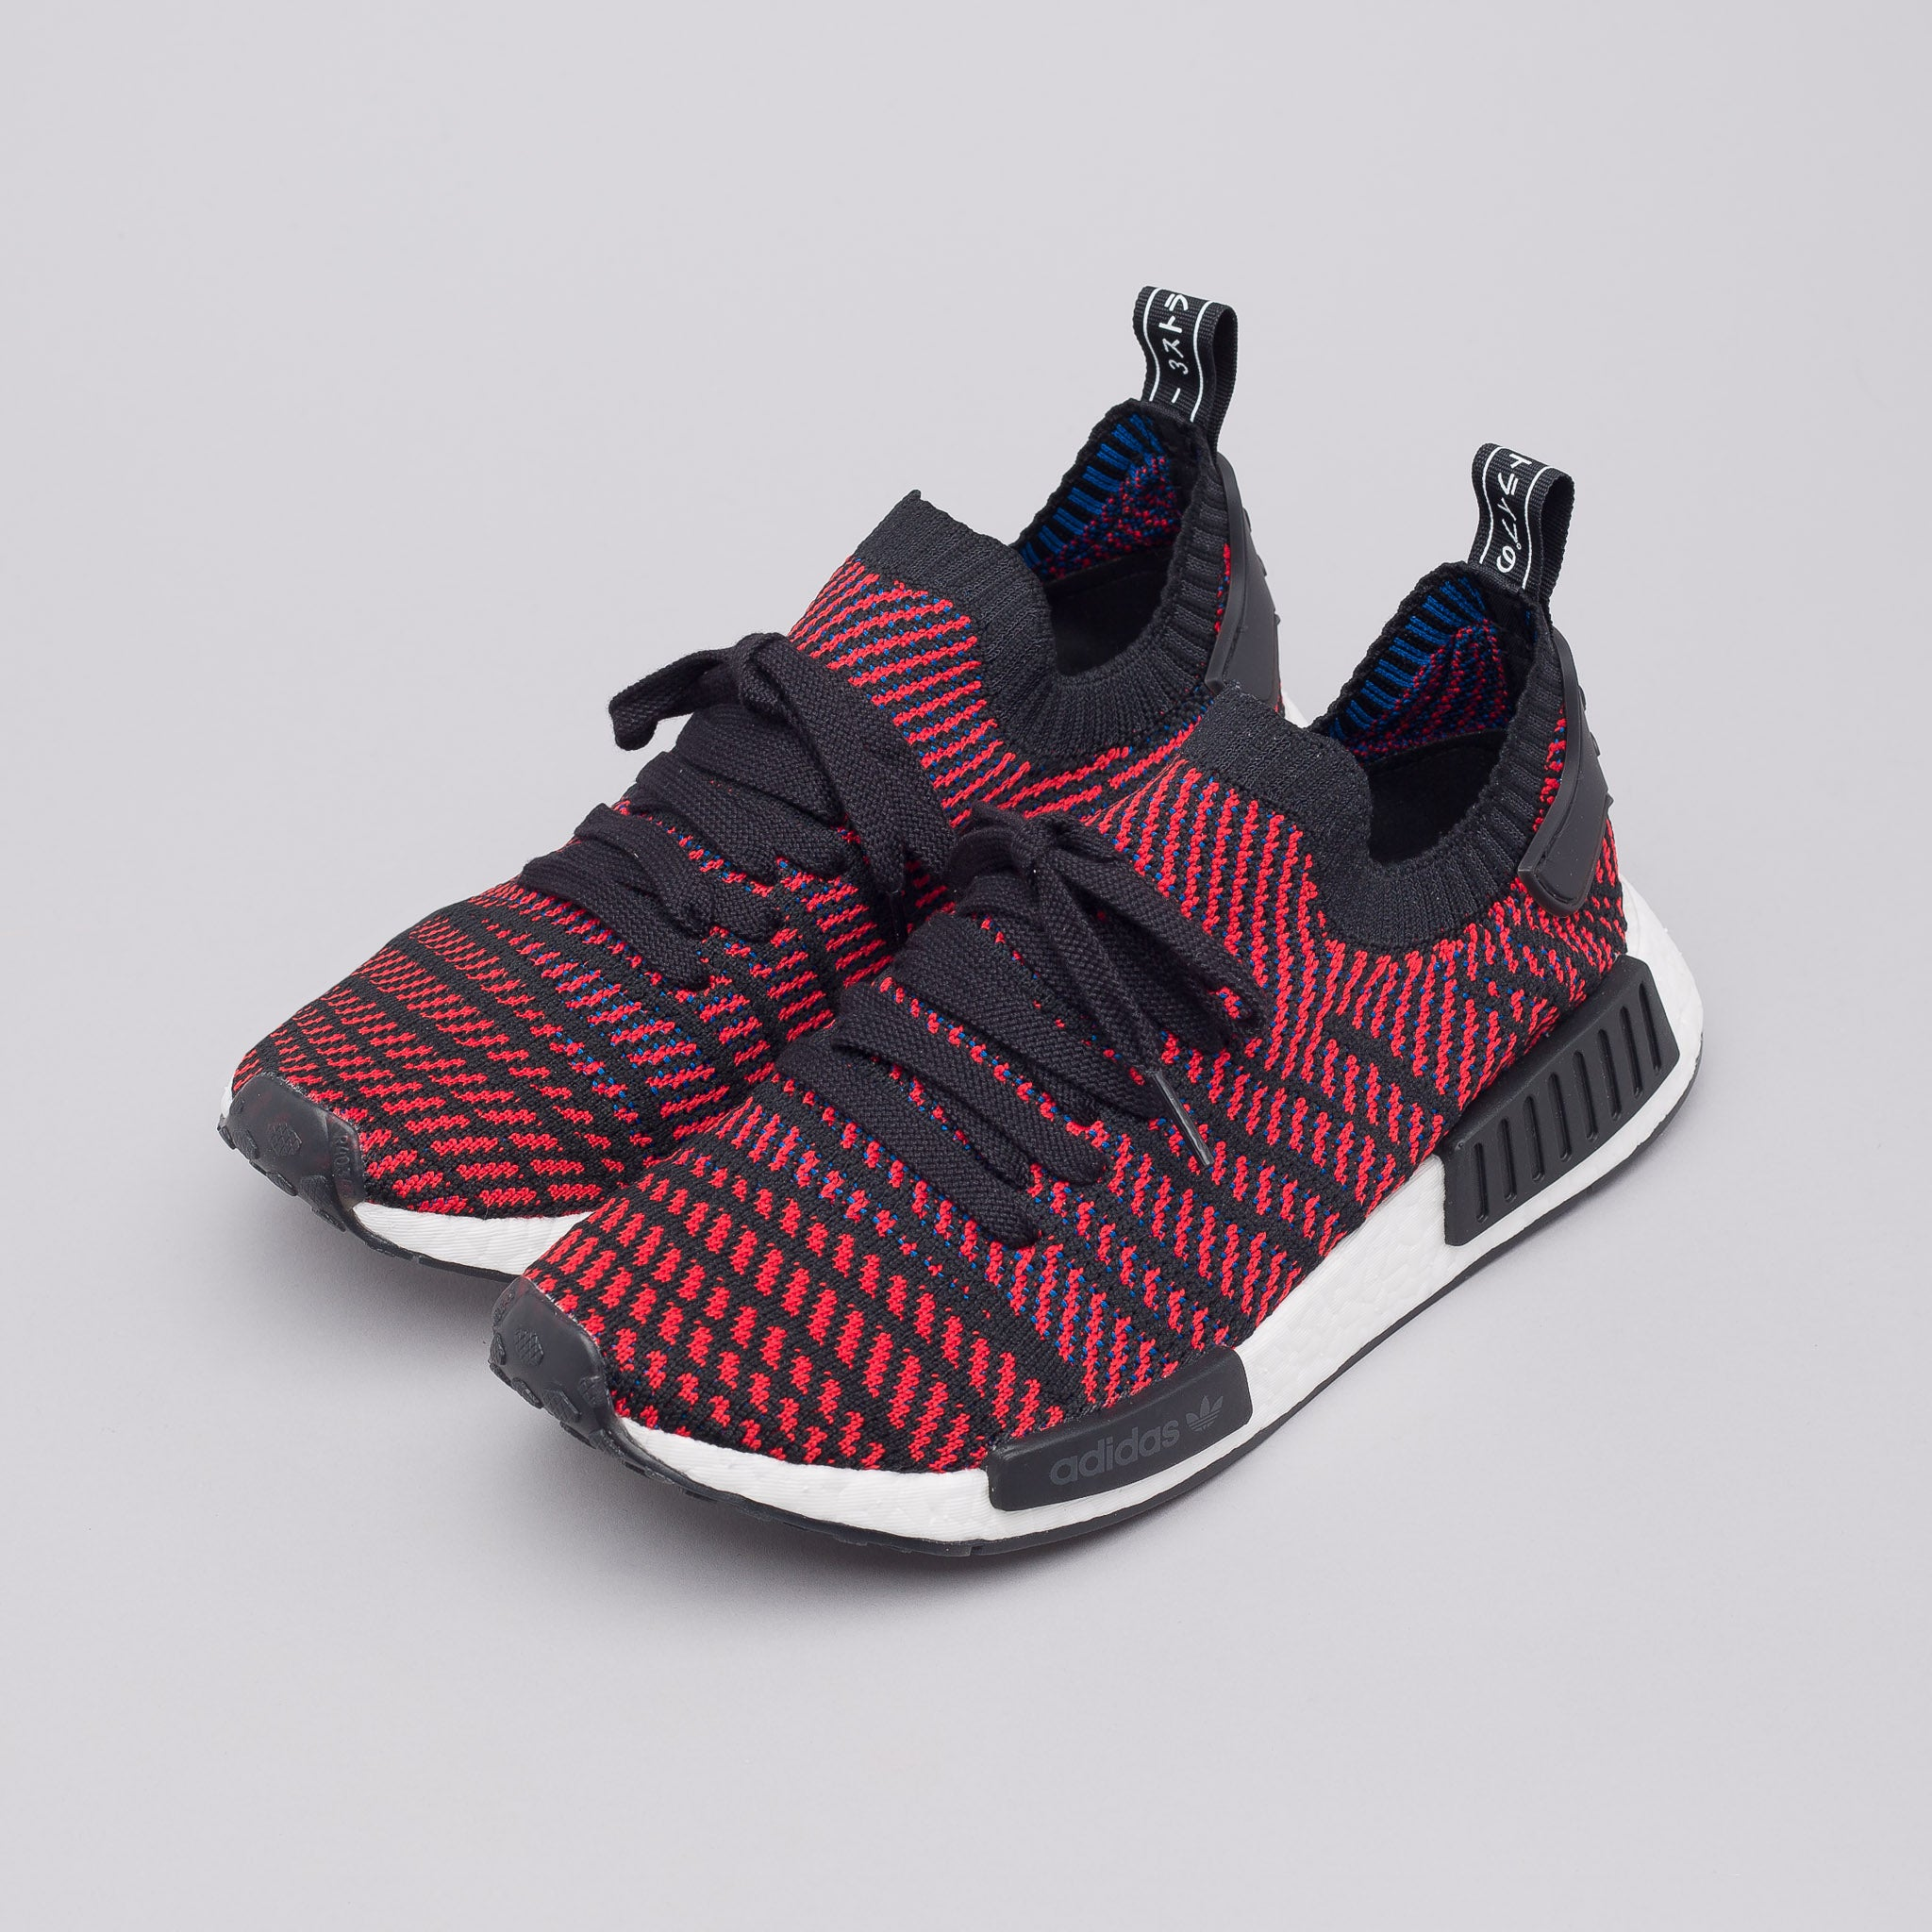 80aa9f762 Buy Adidas Cheap NMD NMD R1 PK Boost Shoes for Sale